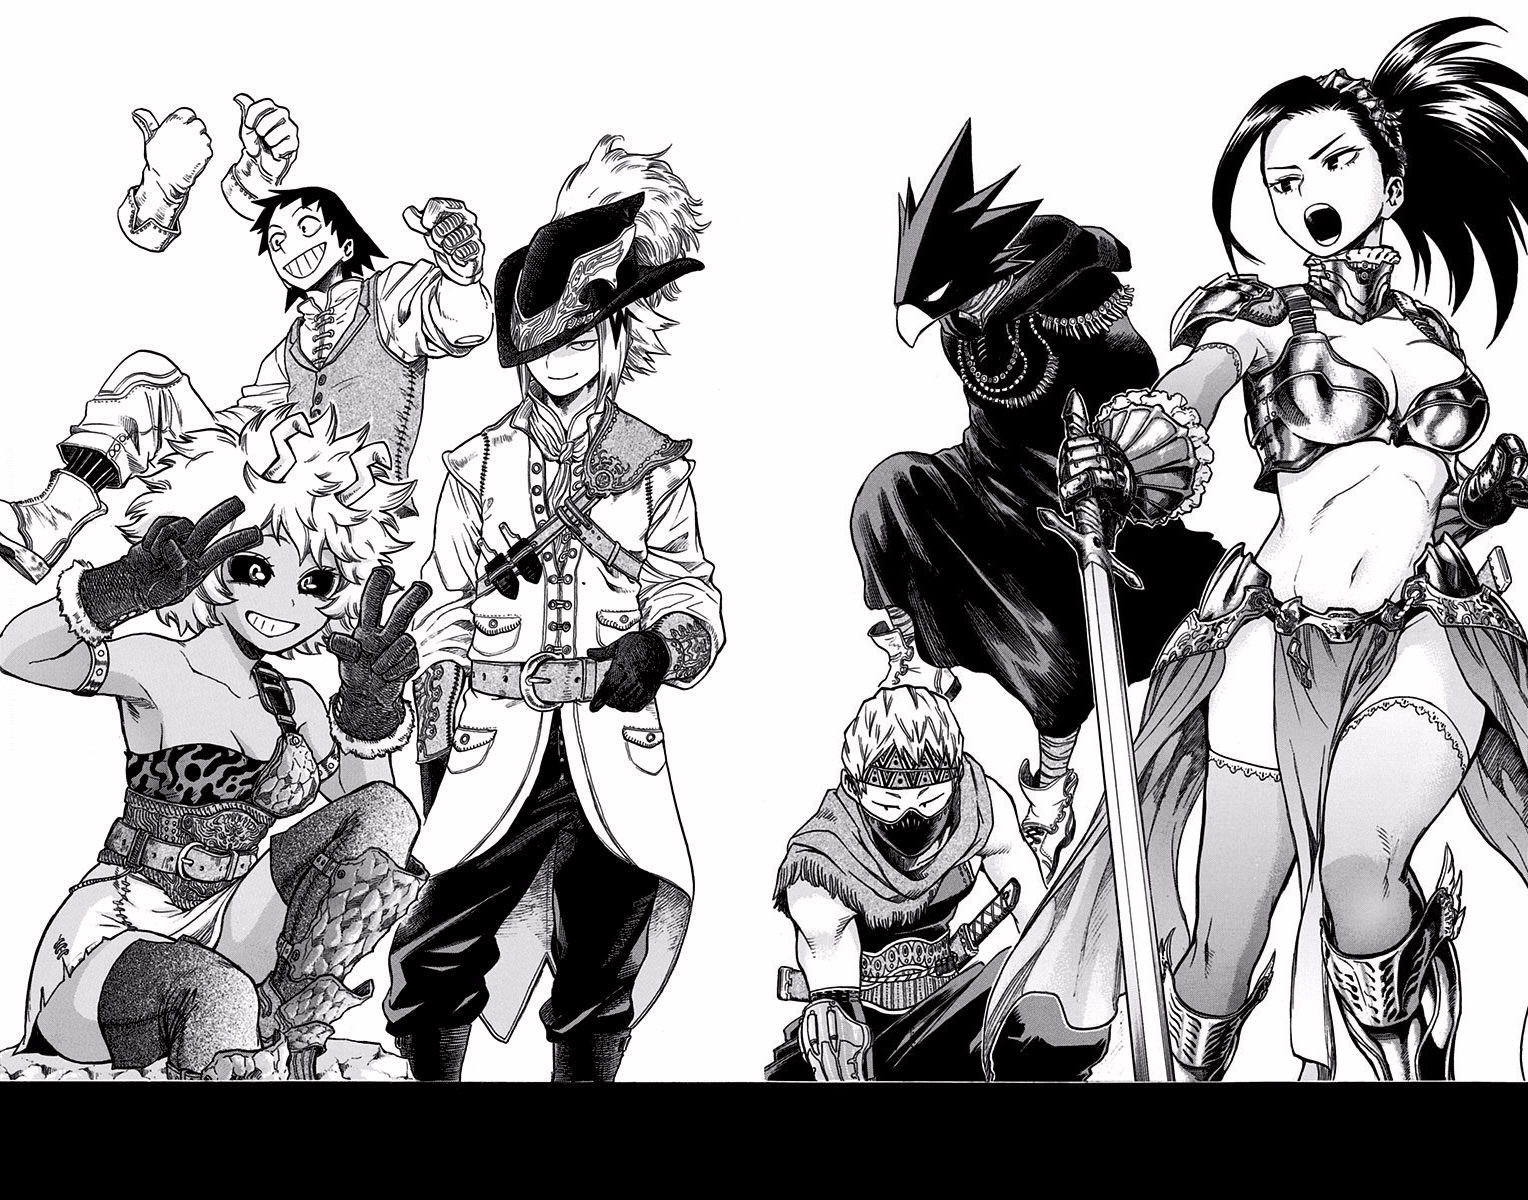 From Vol 14 Omake My Hero Academia